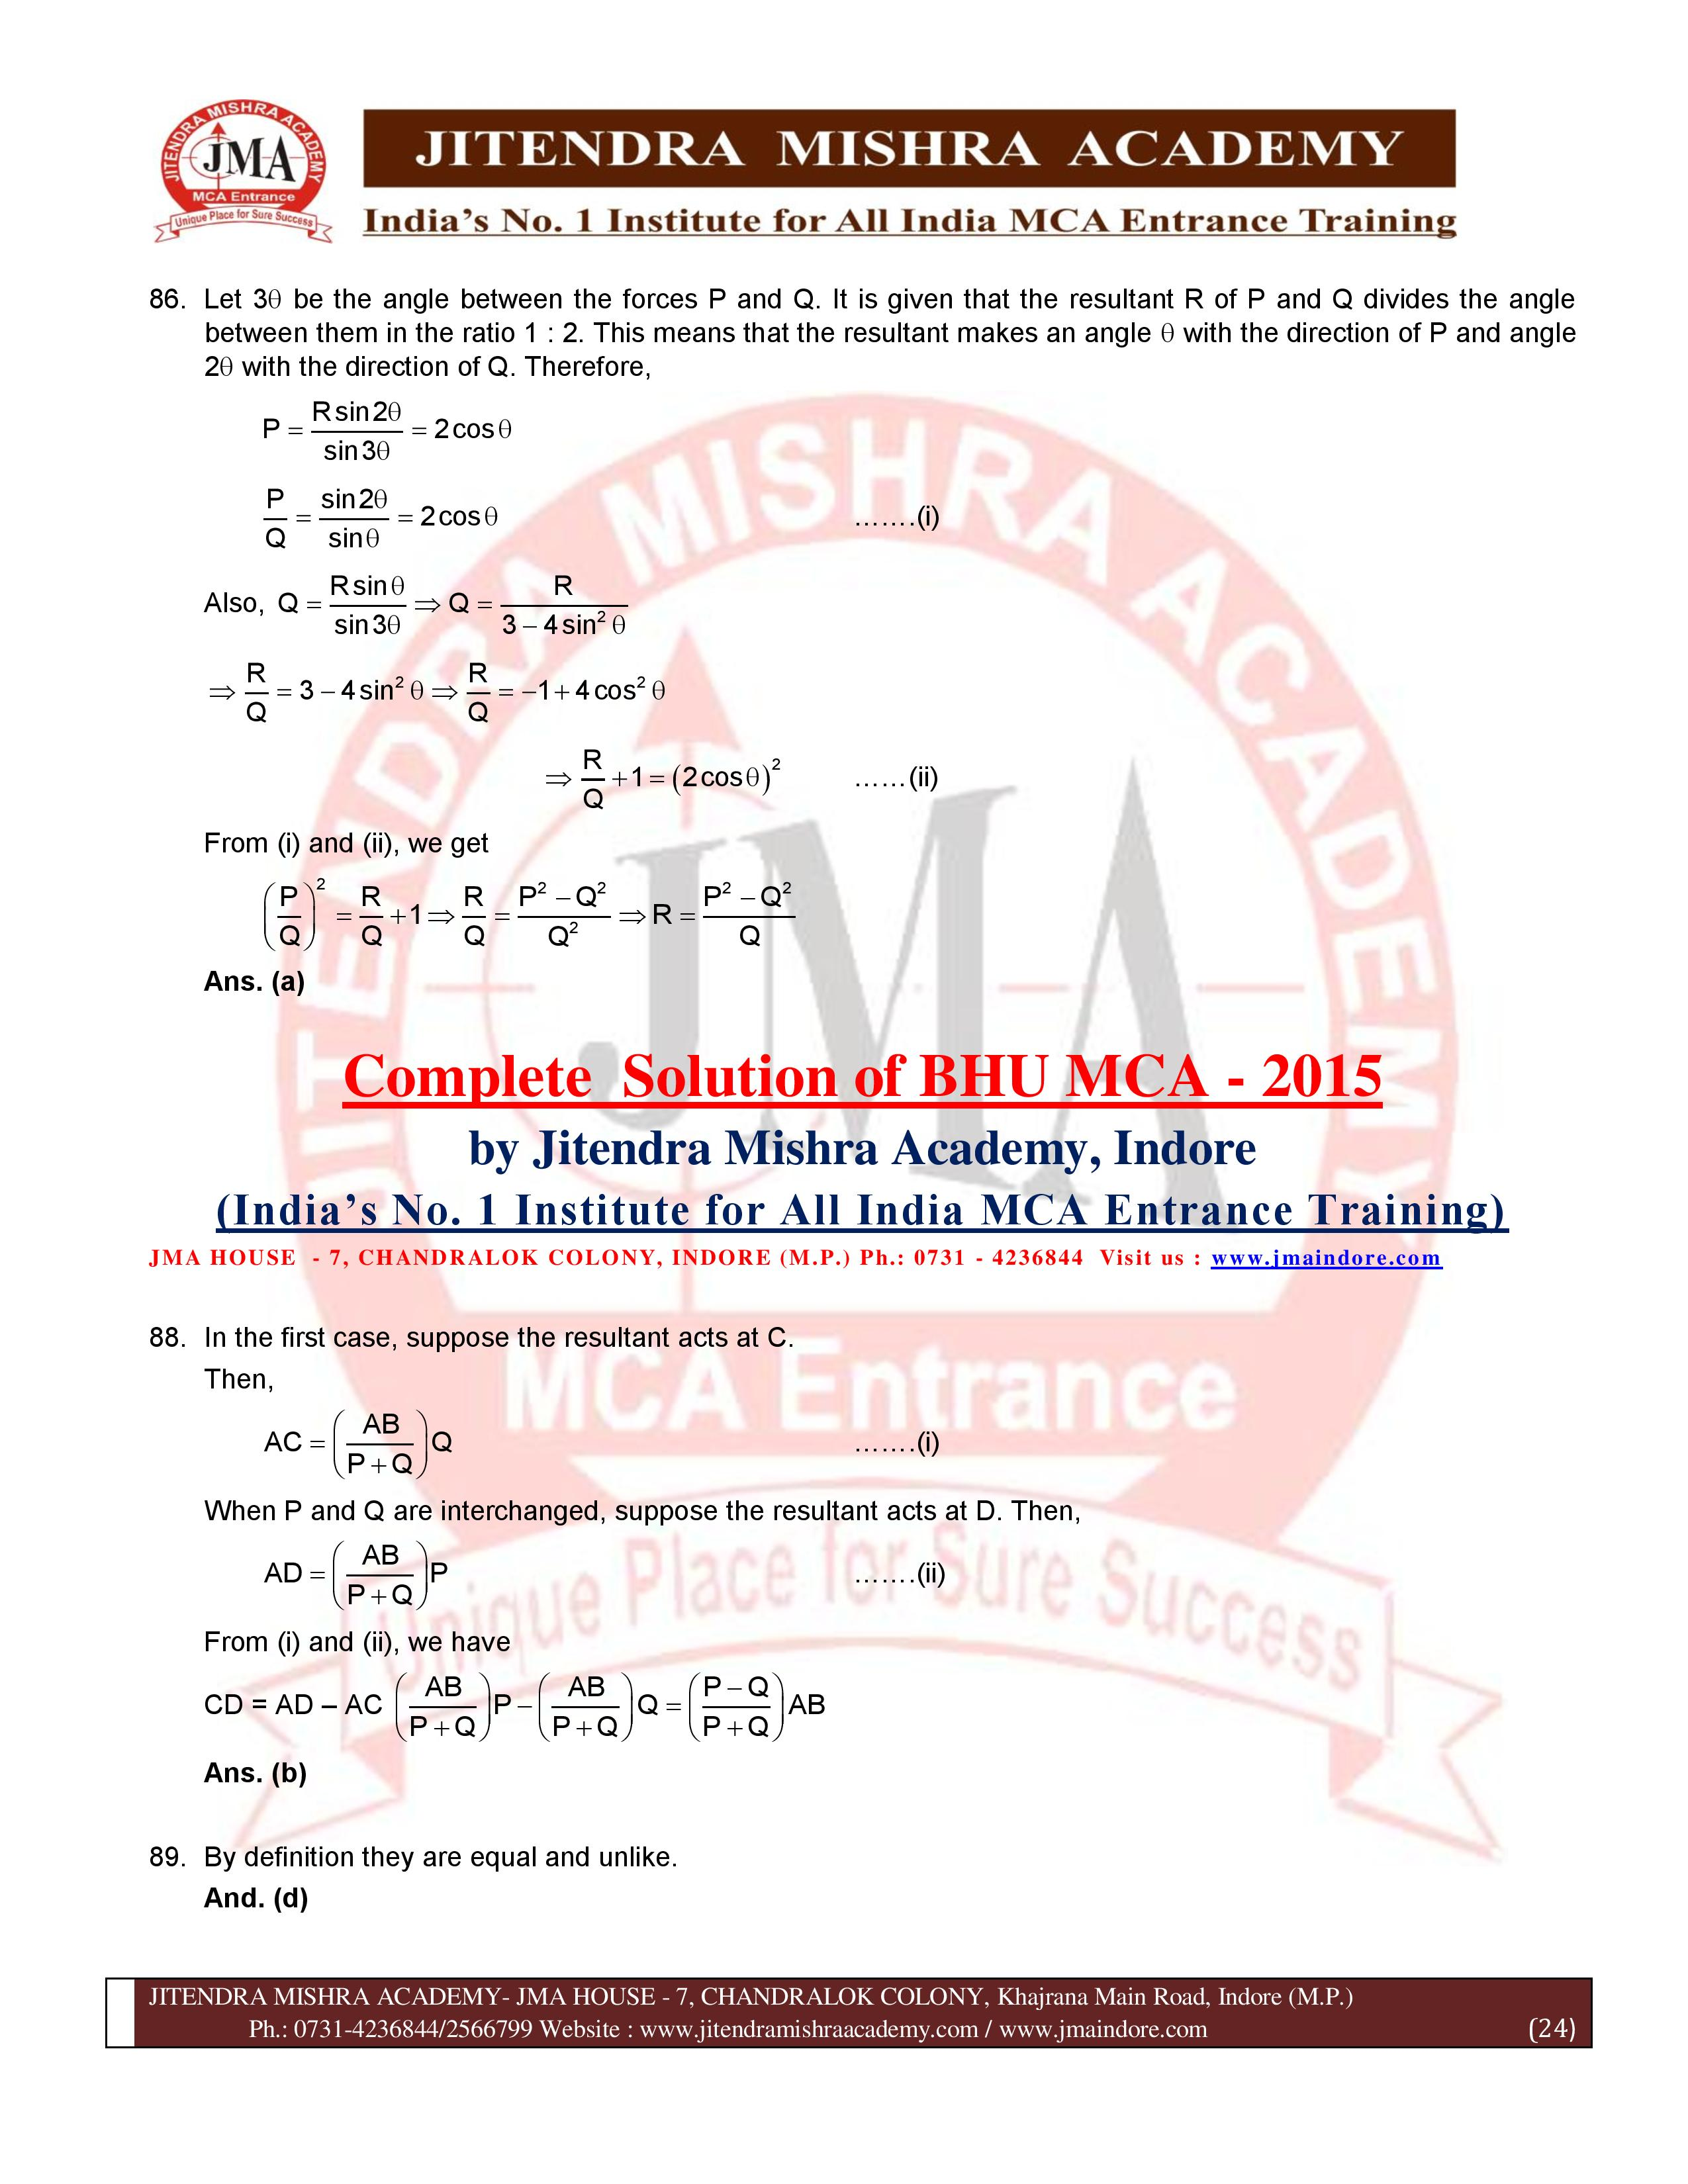 BHU 2015 SOLUTION (SET - 1) (29.06.16)-page-024